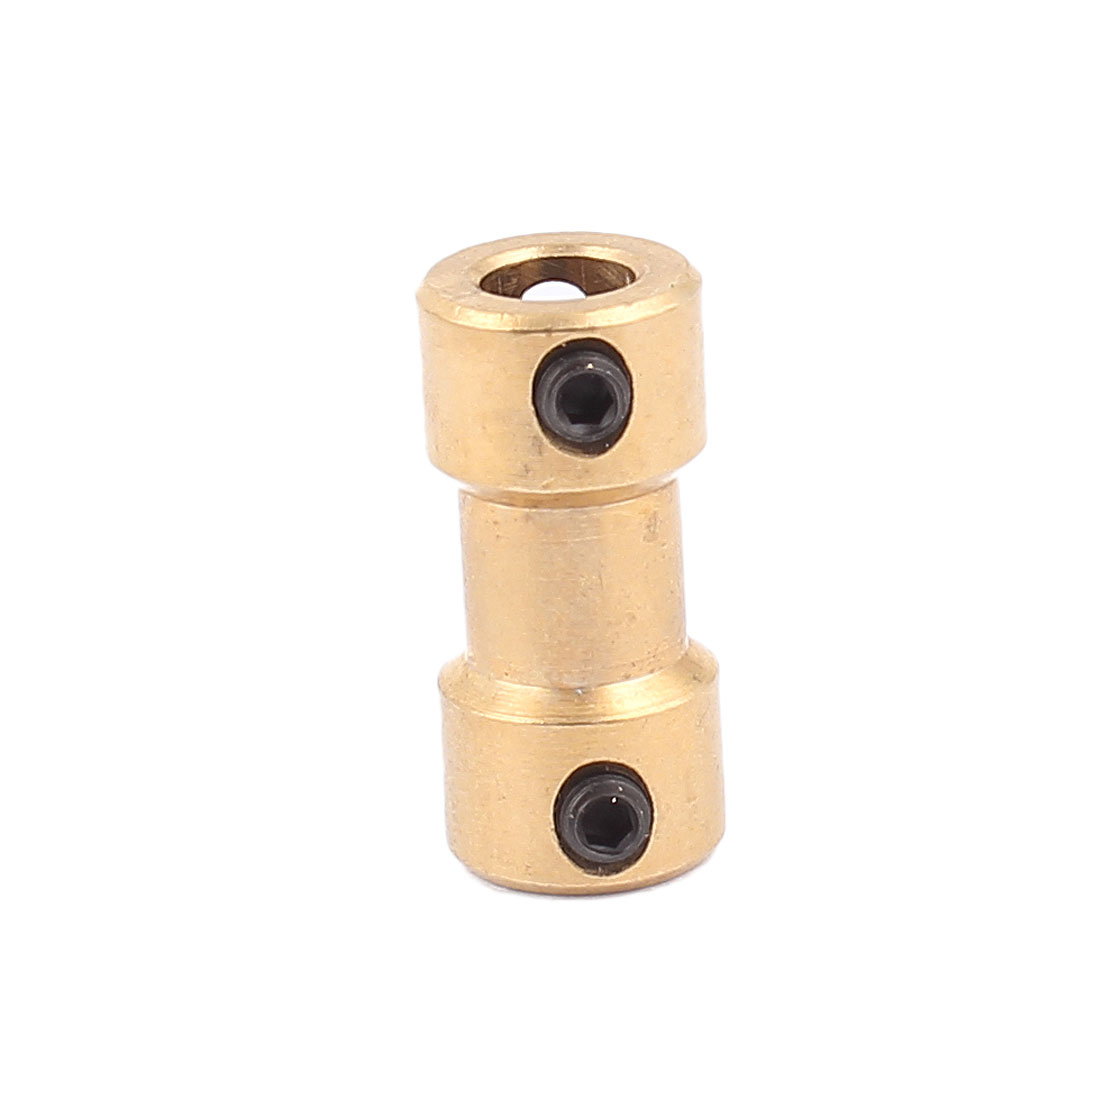 2mm to 5mm Copper DIY Motor Shaft Coupling Joint Connector for Electric Car Toy